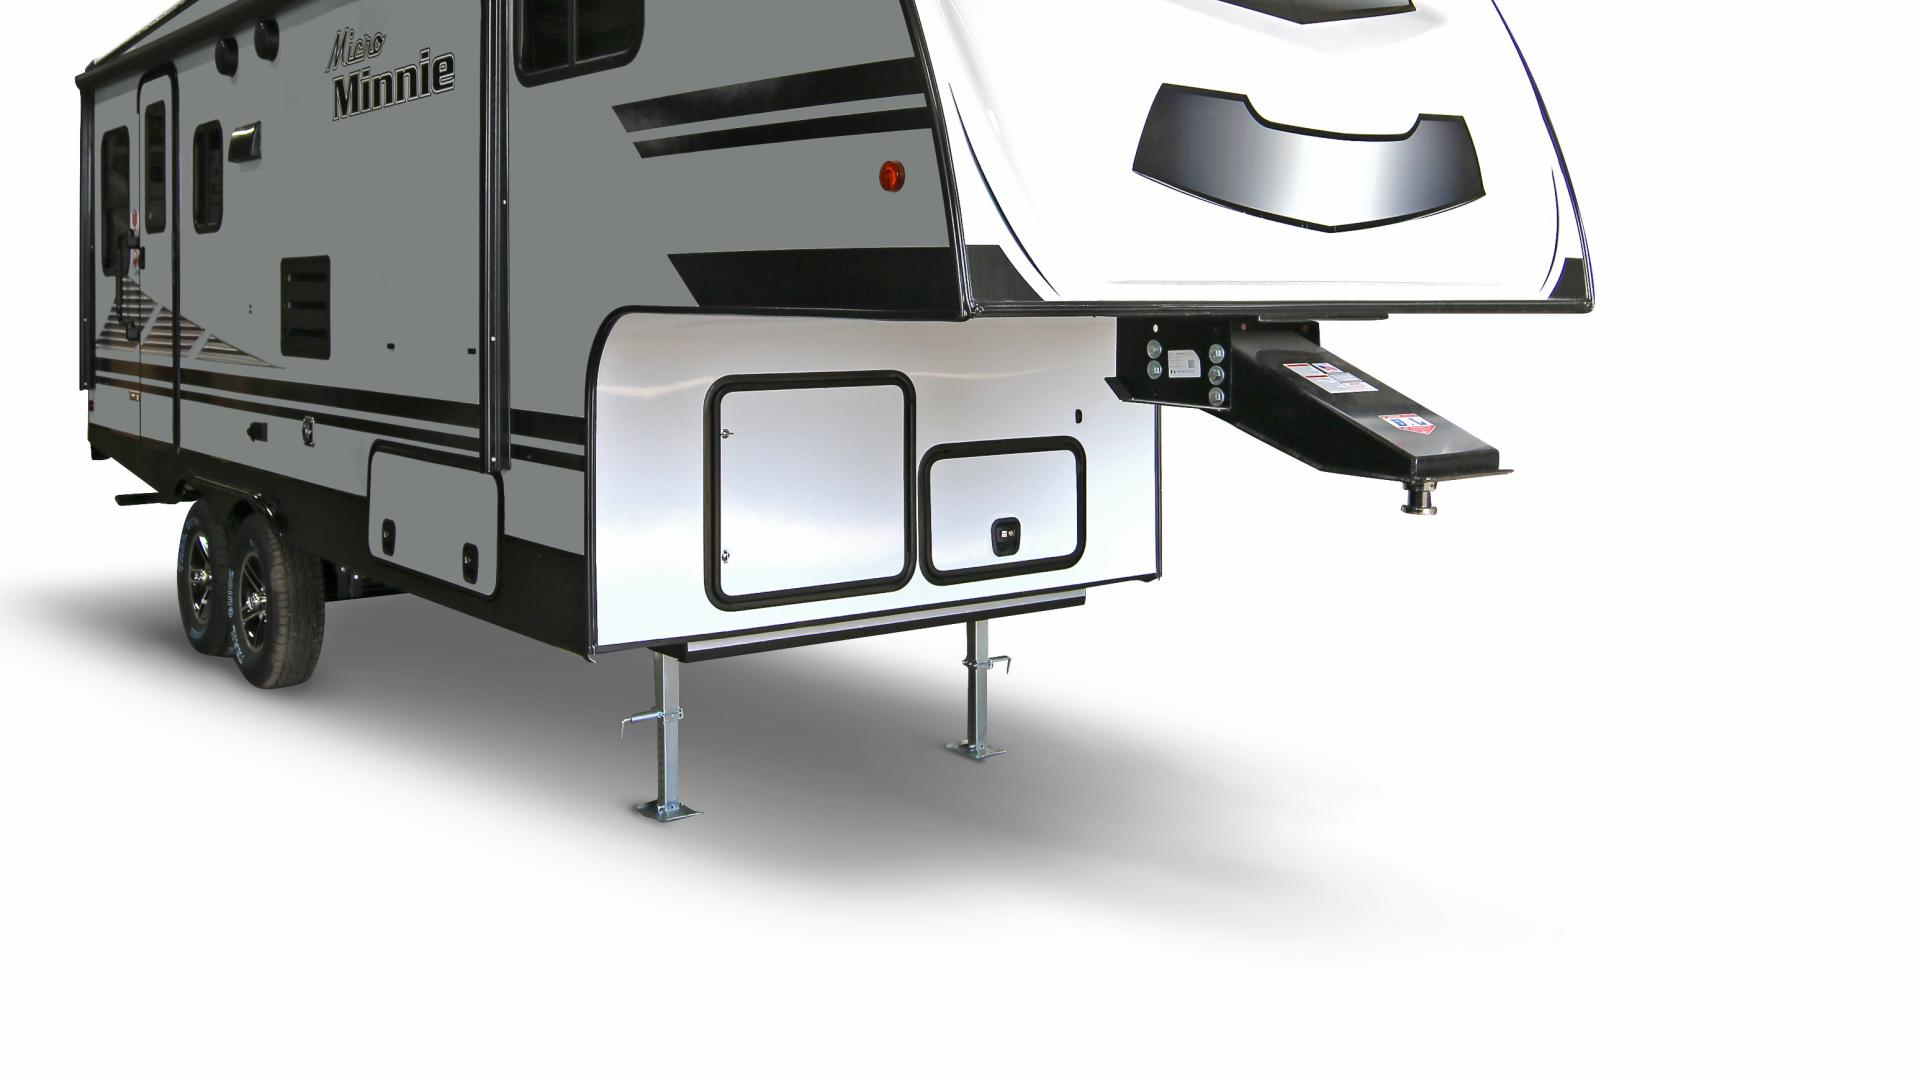 Winnebago Micro Minnie Fifth Wheel 3/4 exterior view featuring the tow hitch